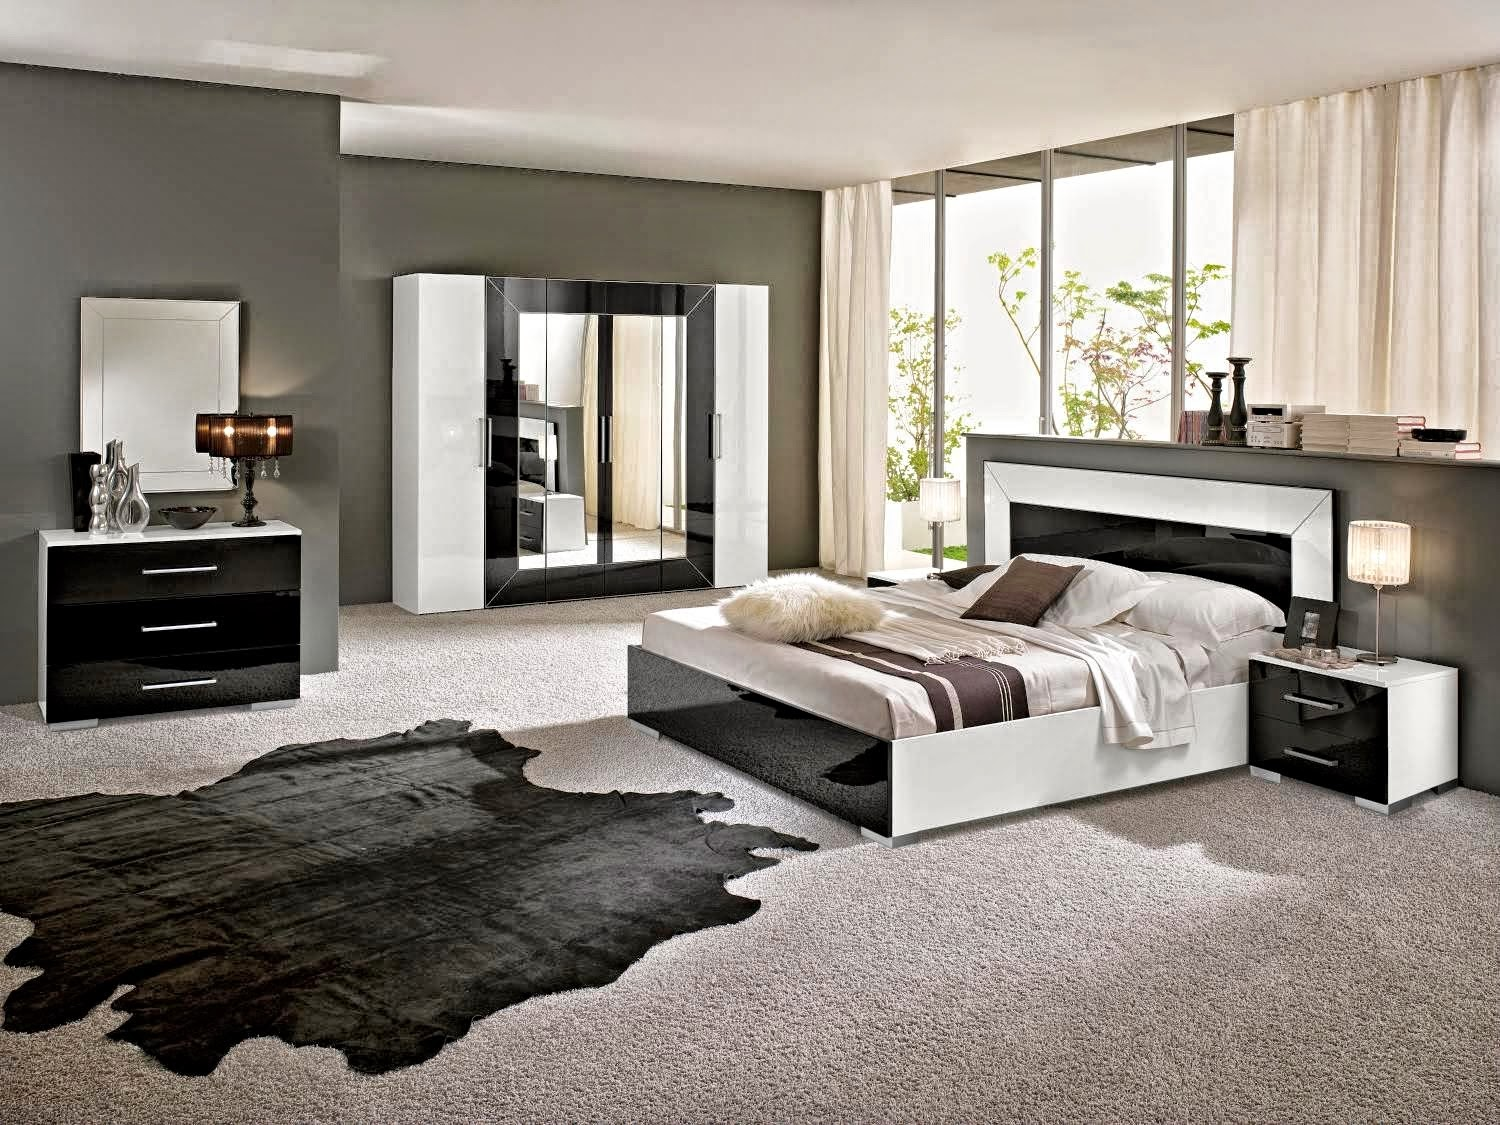 salle de bain scandinave. Black Bedroom Furniture Sets. Home Design Ideas